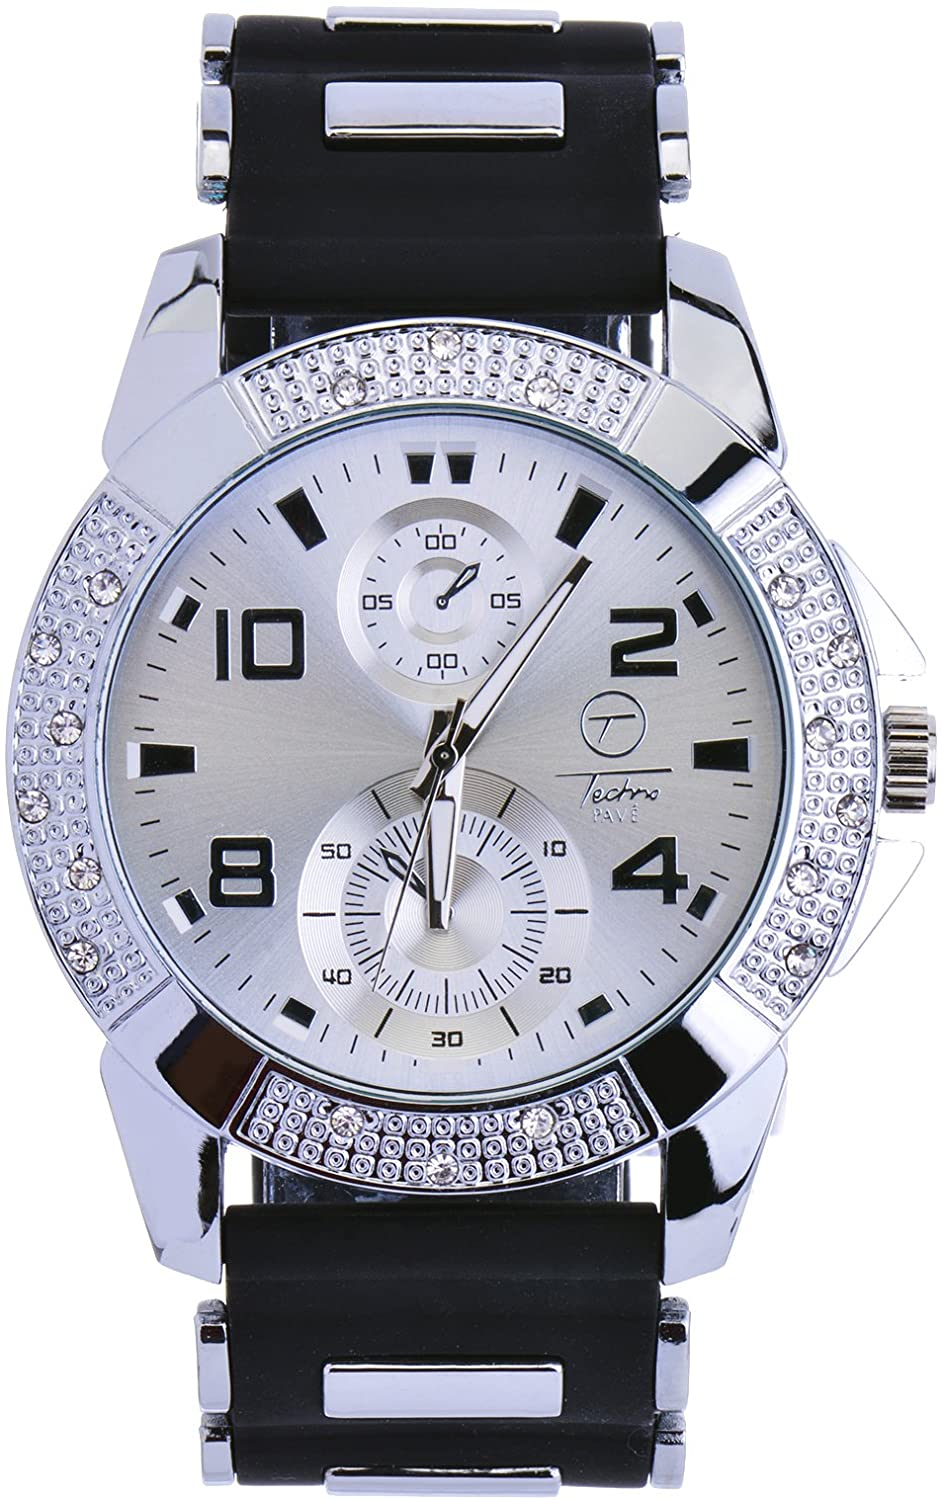 Men's Fashion Hip Hop Bling Iced Out Silver Plated Black Silicon Band Watches WR 8485 SBK